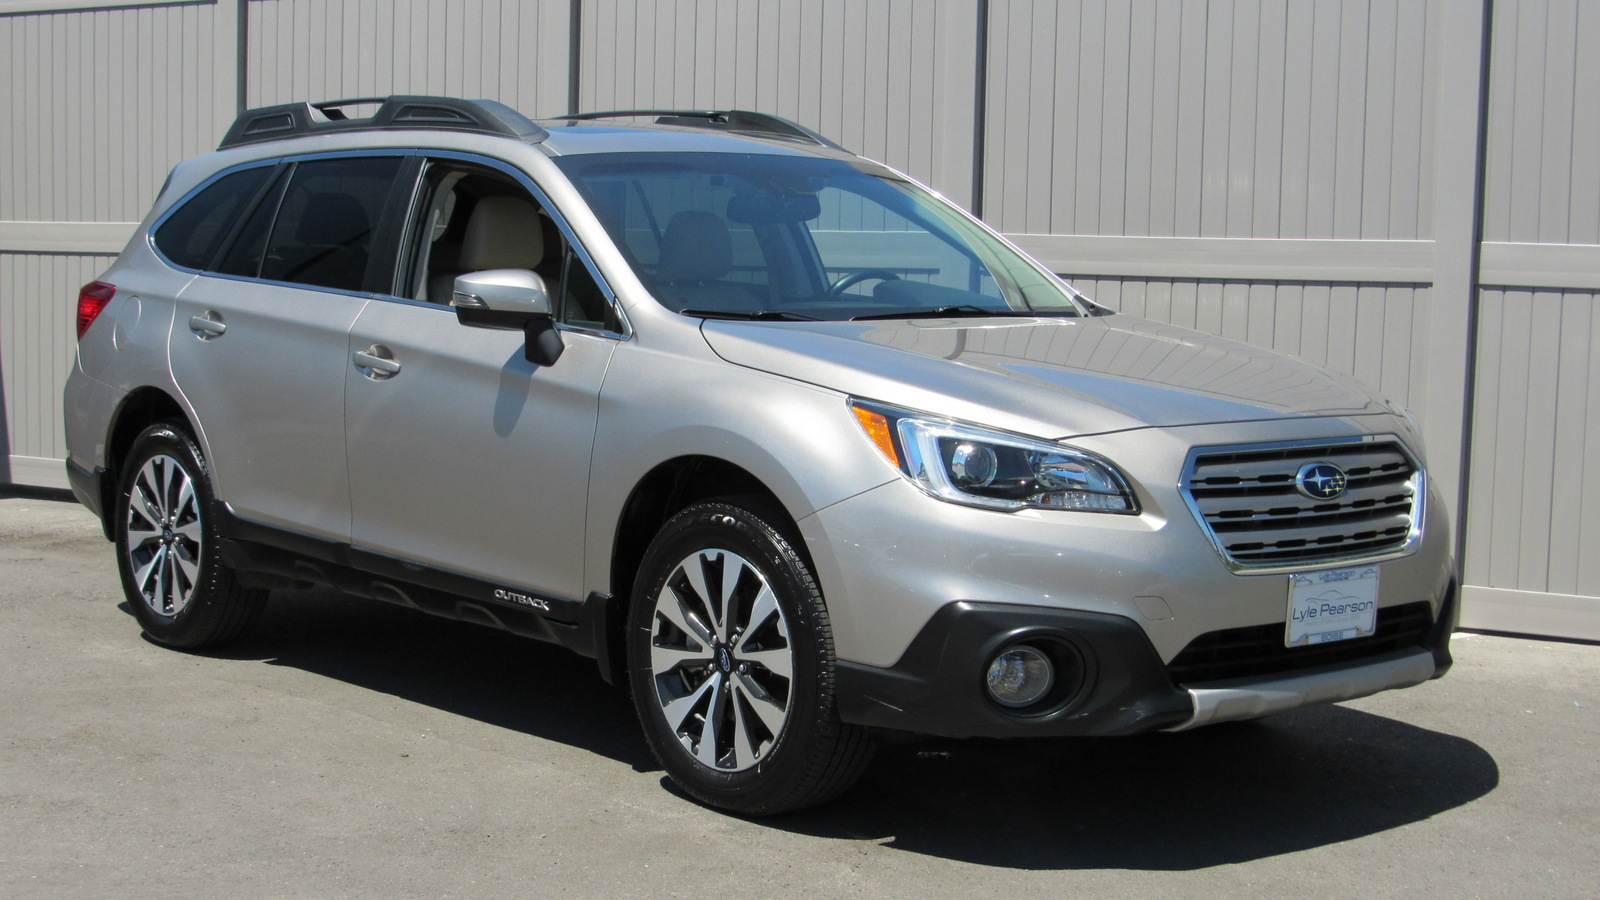 Pre-Owned 2015 Subaru Outback 4dr Wgn 2.5i Limited